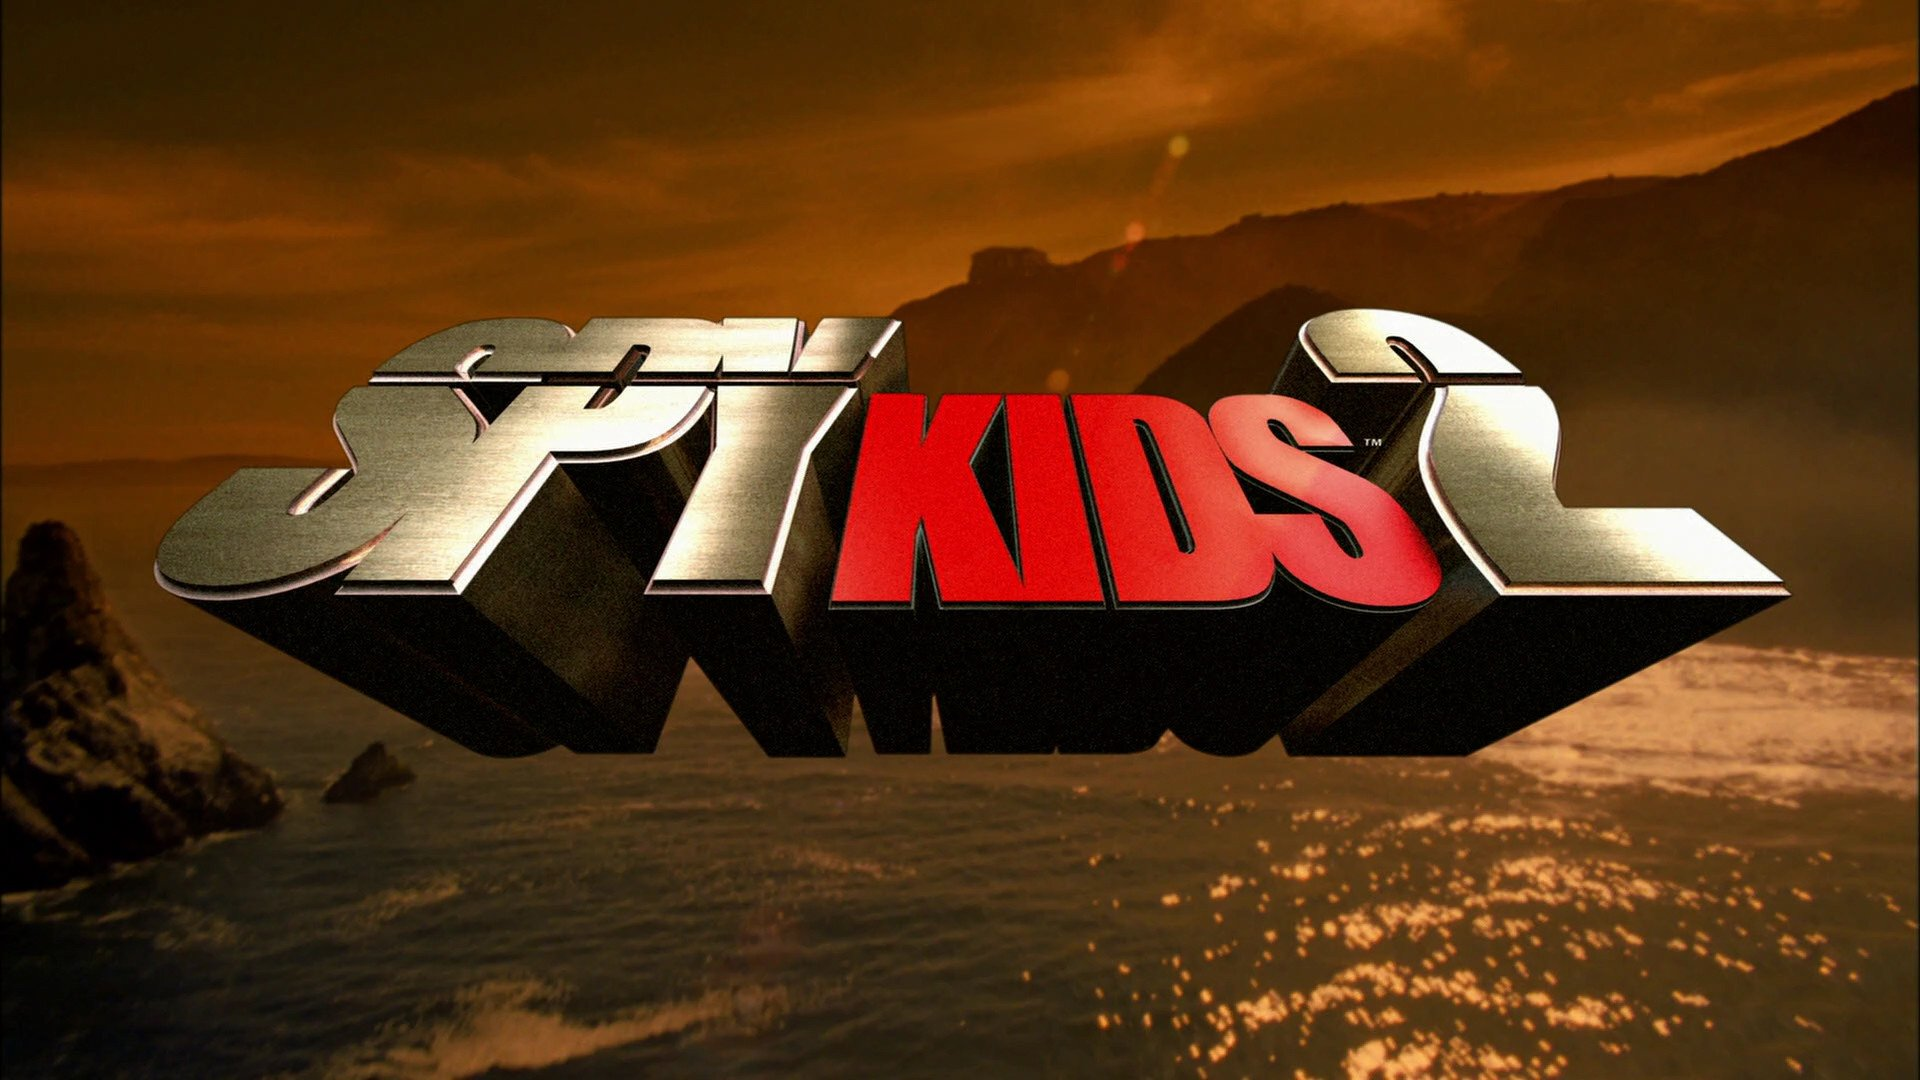 spy kids 2 the island of lost dreams hd wallpaper background image 1920x1080 id 673228 wallpaper abyss wallpaper abyss alpha coders